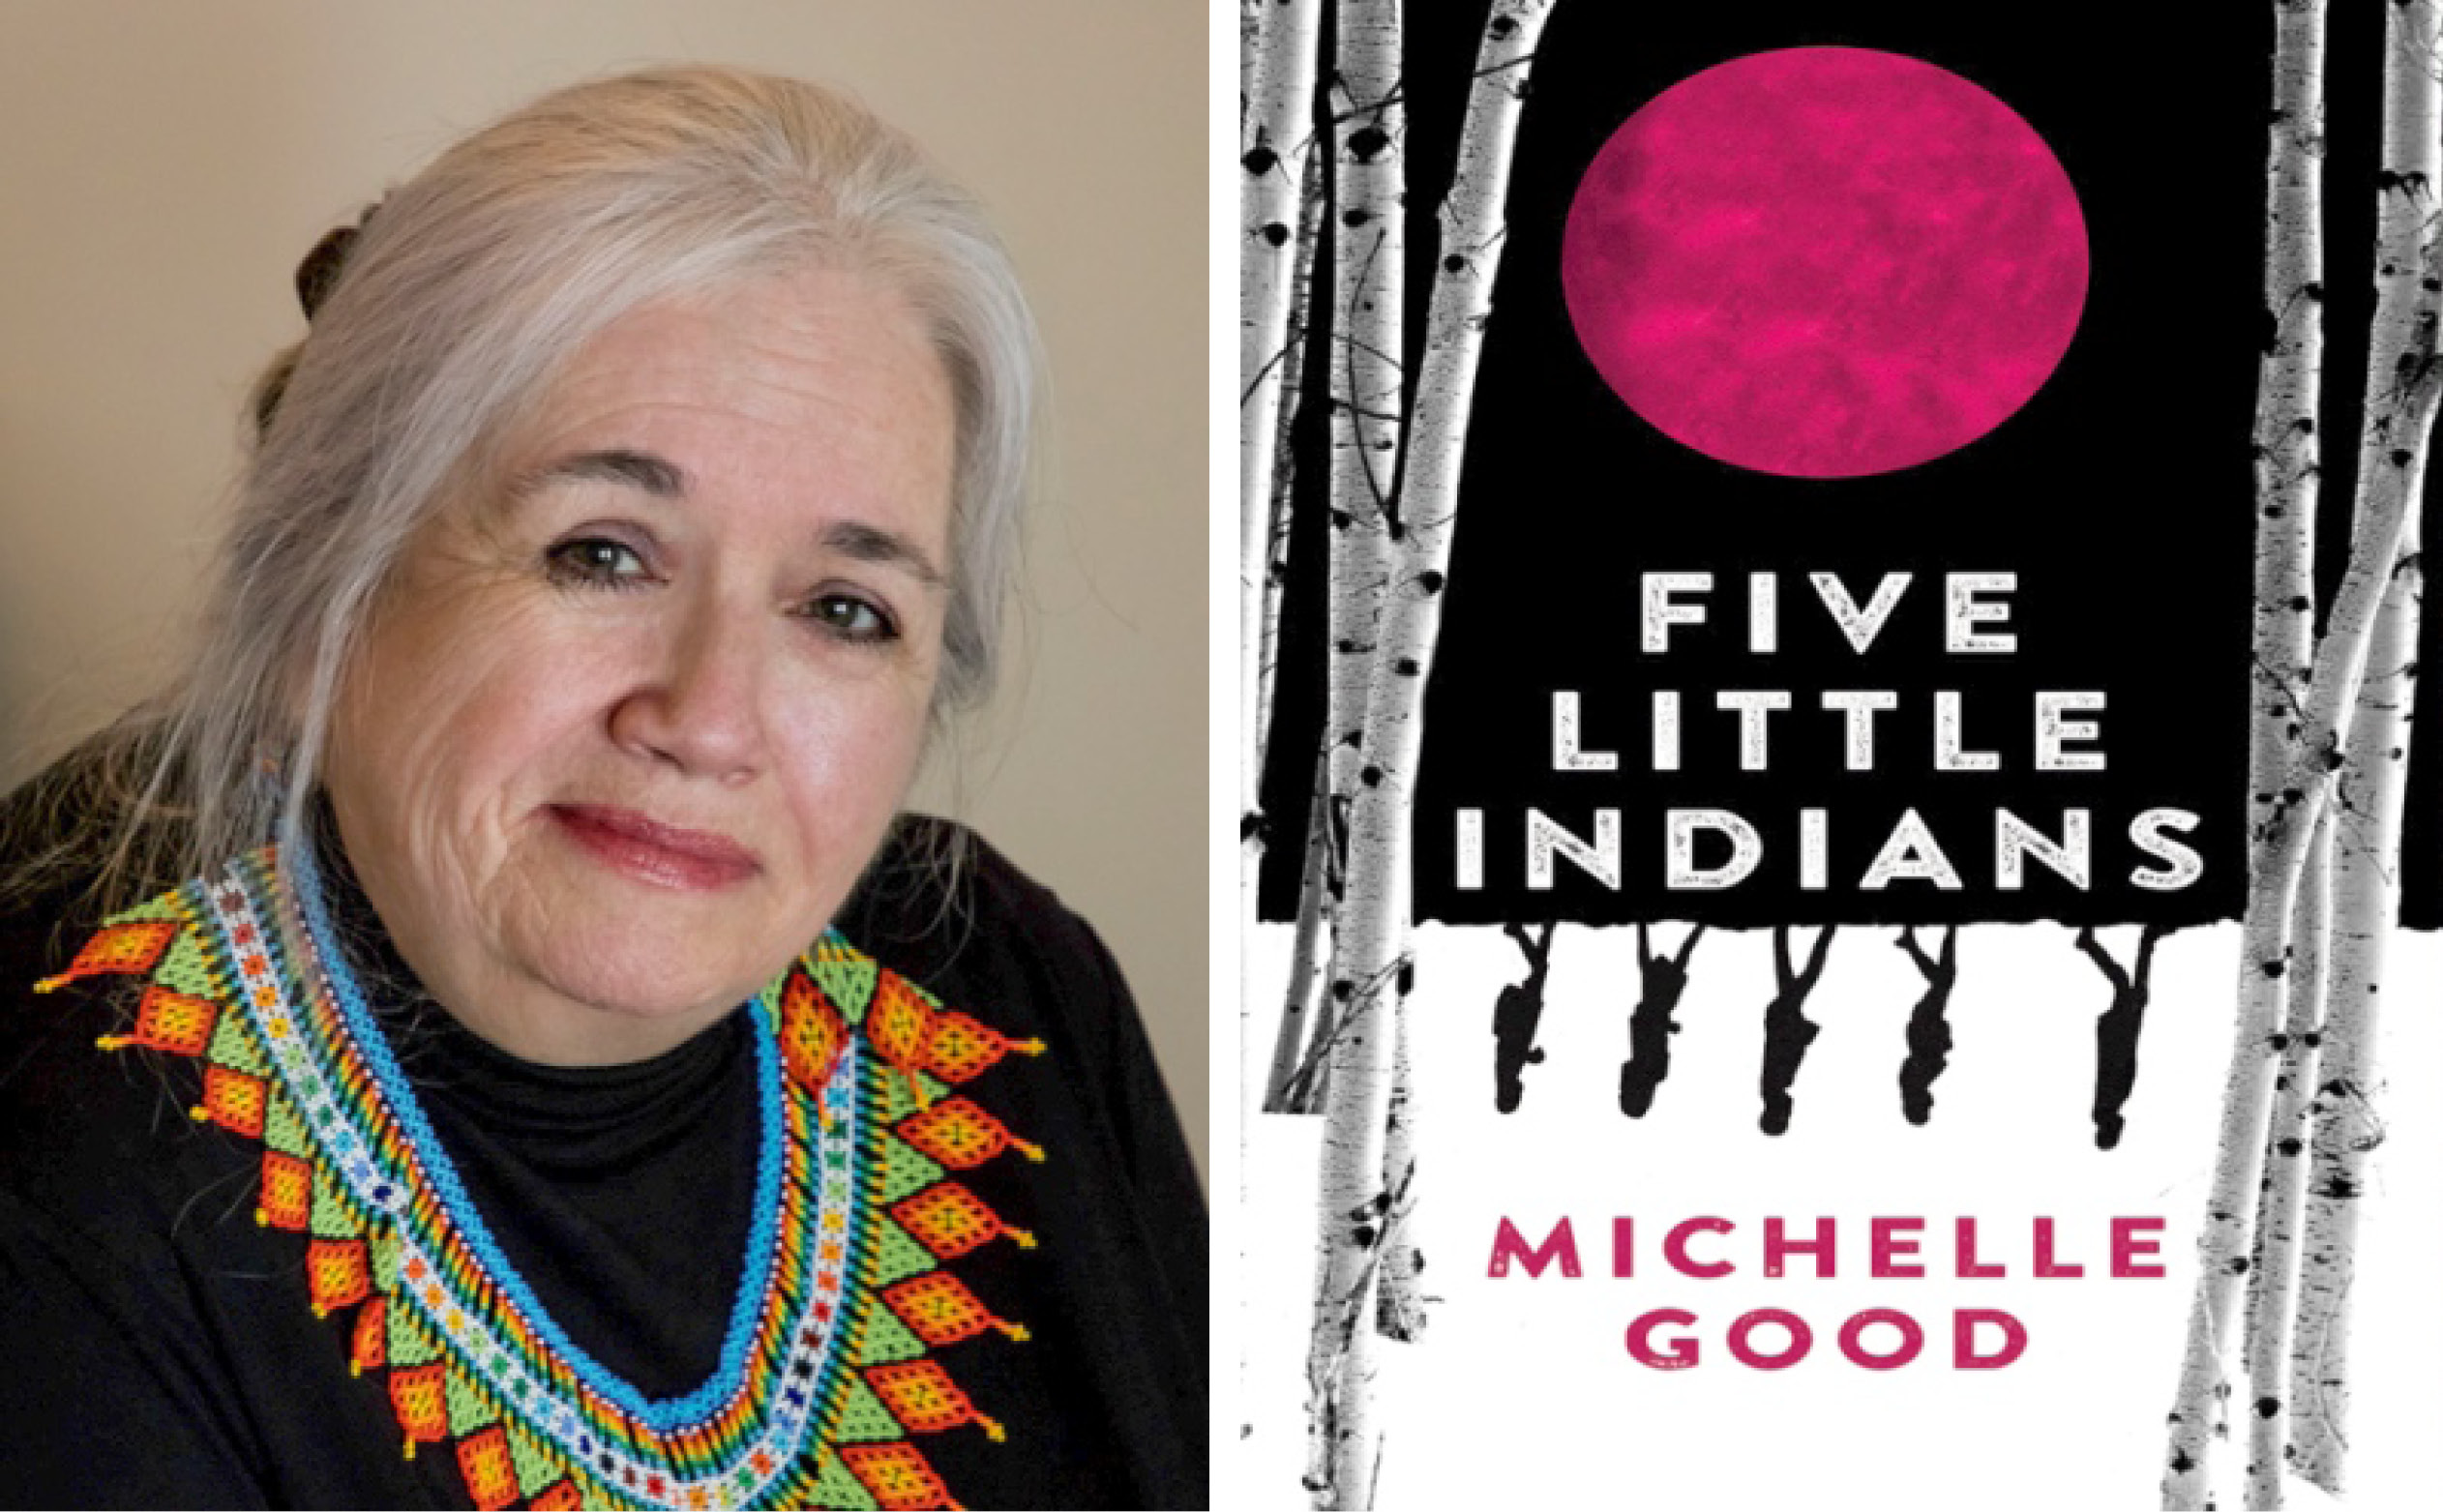 a headshot of author Michelle Good's headshot next to the cover of her book, Five Little Indians